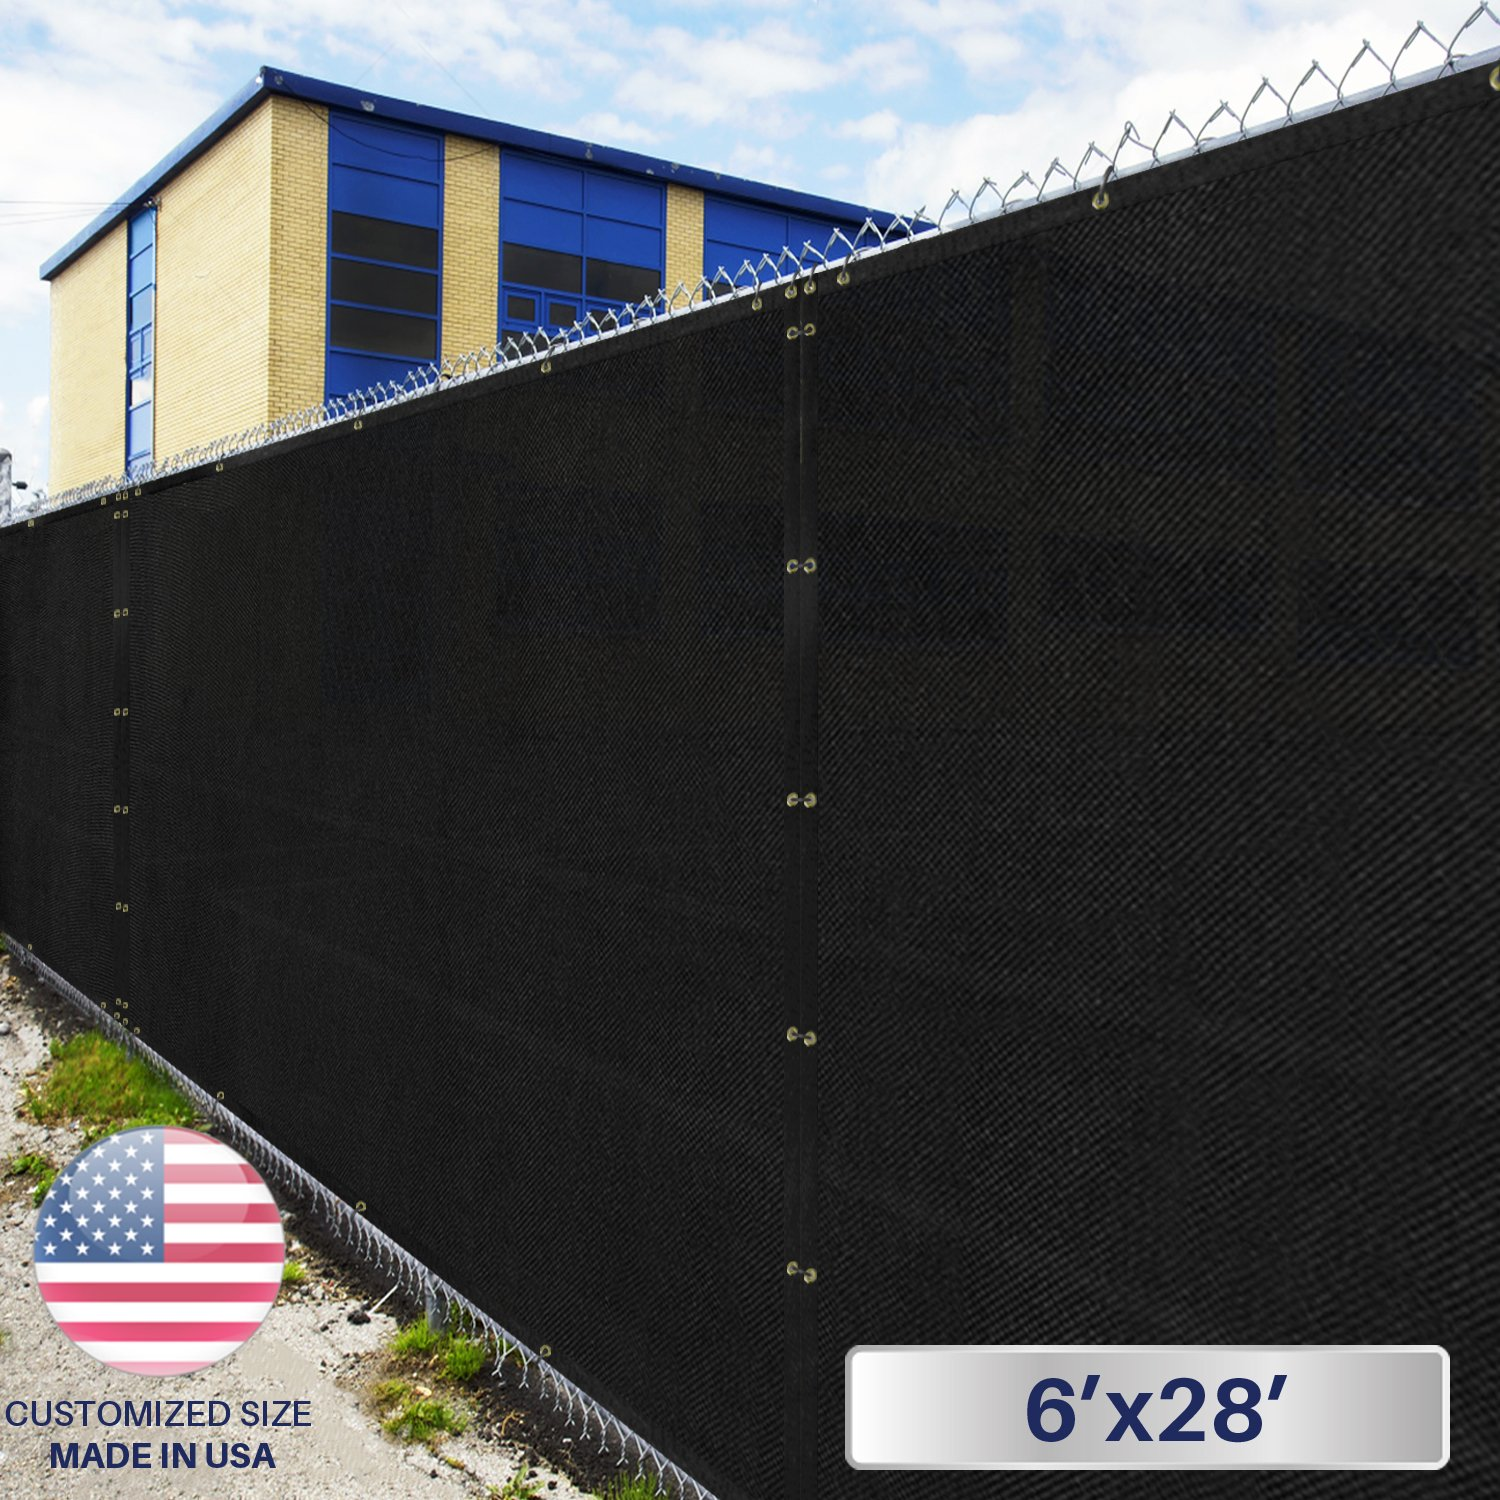 6' x 28' Privacy Fence Screen in Black with Brass Grommet 85% Blockage Windscreen Outdoor Mesh Fencing Cover Netting 150GSM Fabric - Custom Size